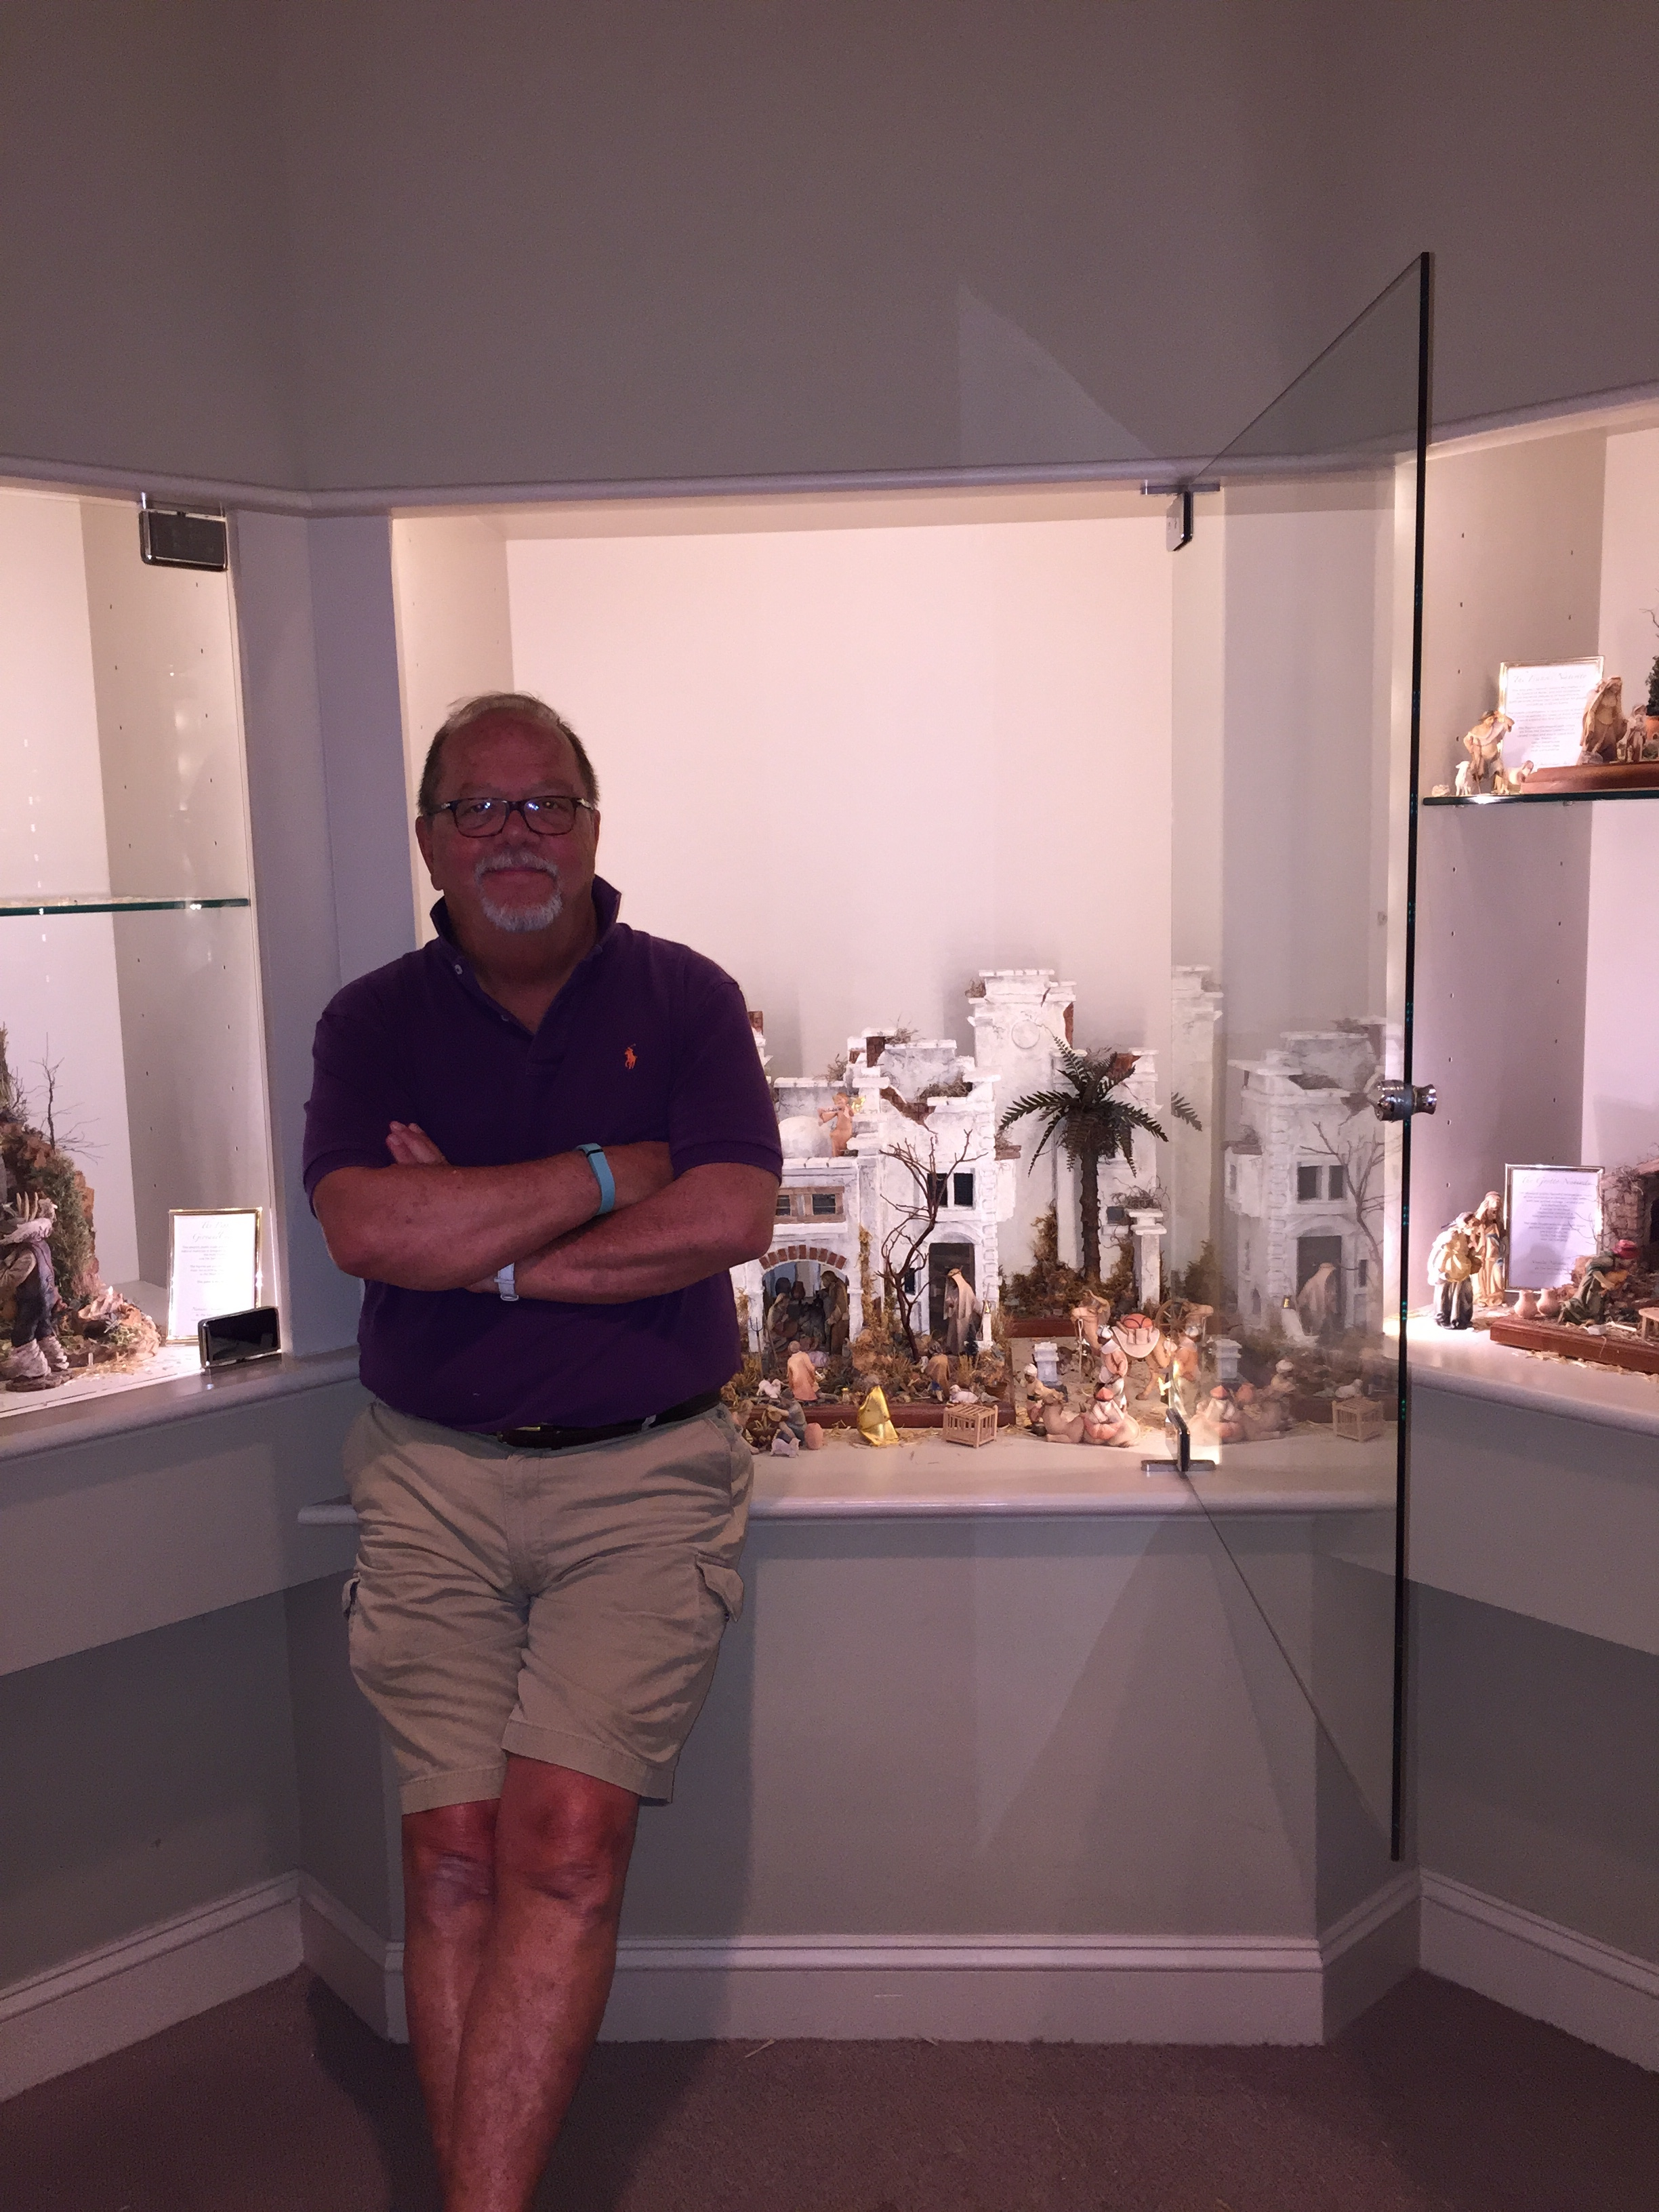 MICHAEL STUMPF AT THE BYERS' CHOICE NATIVITY INSTALLATION IN HONOR OF POPE FRANCIS' U.S. VISIT.